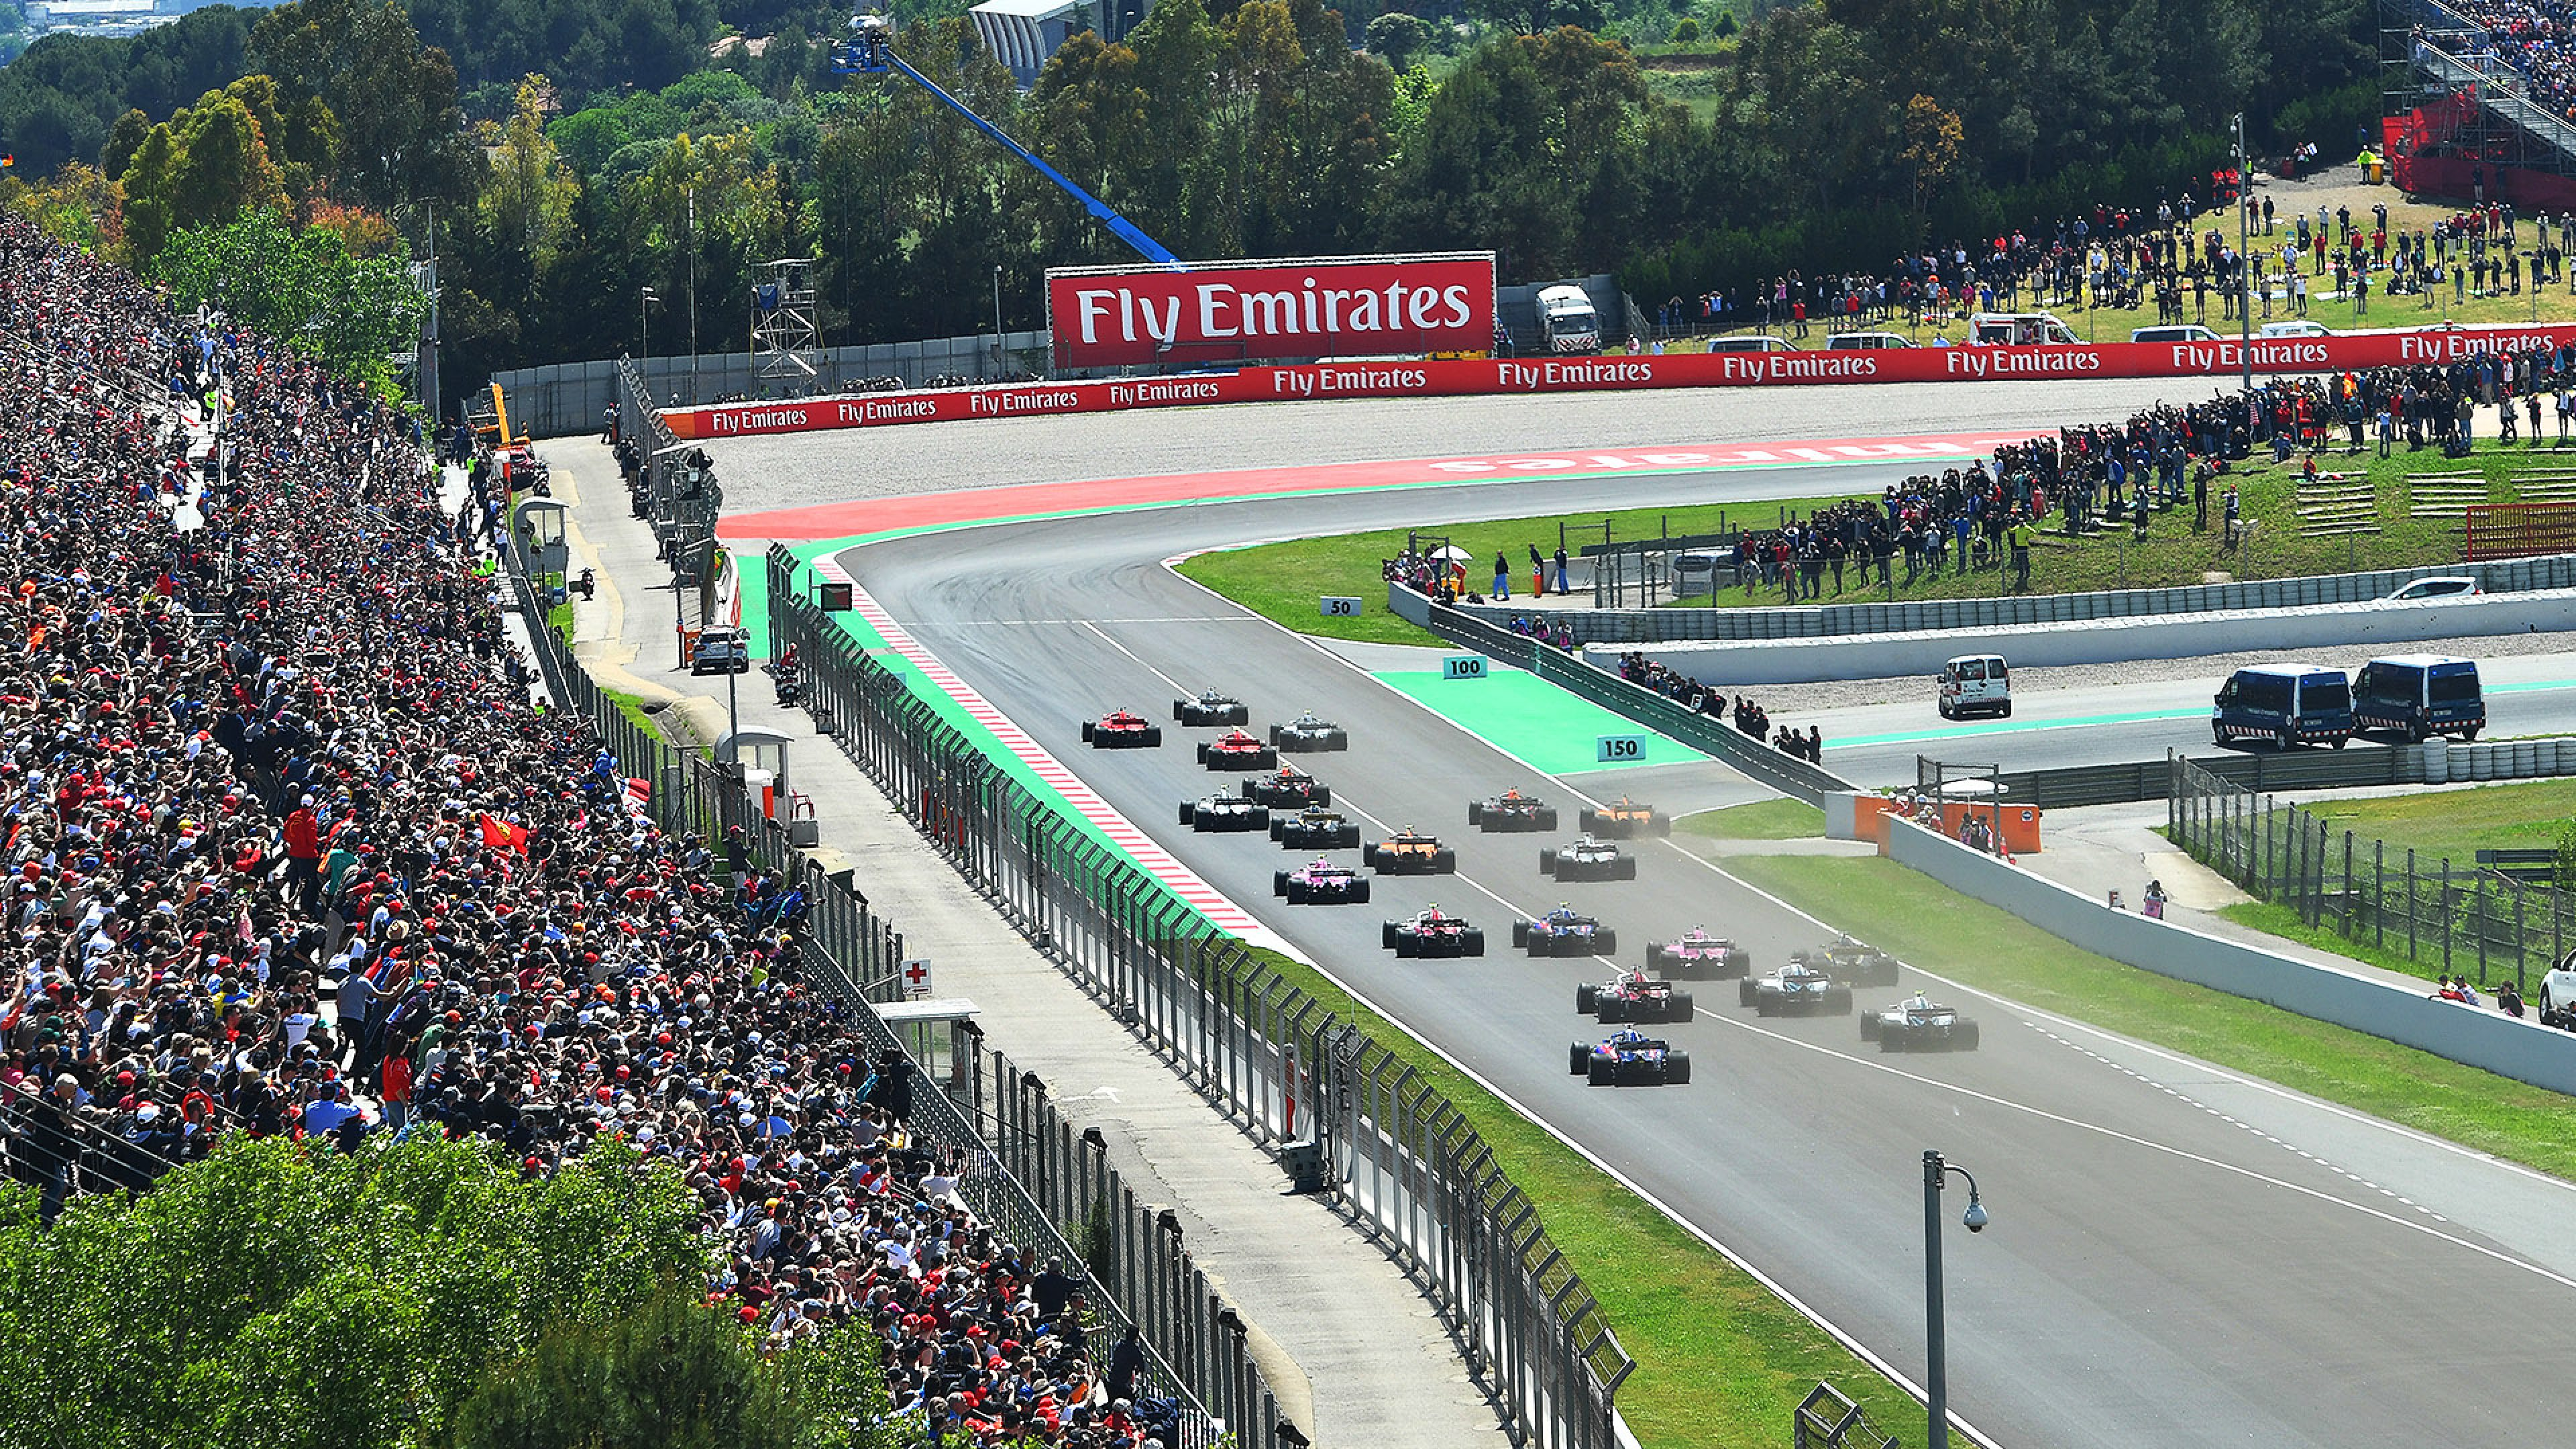 F1 Schedule 2019 - Official Calendar of Grand Prix Races